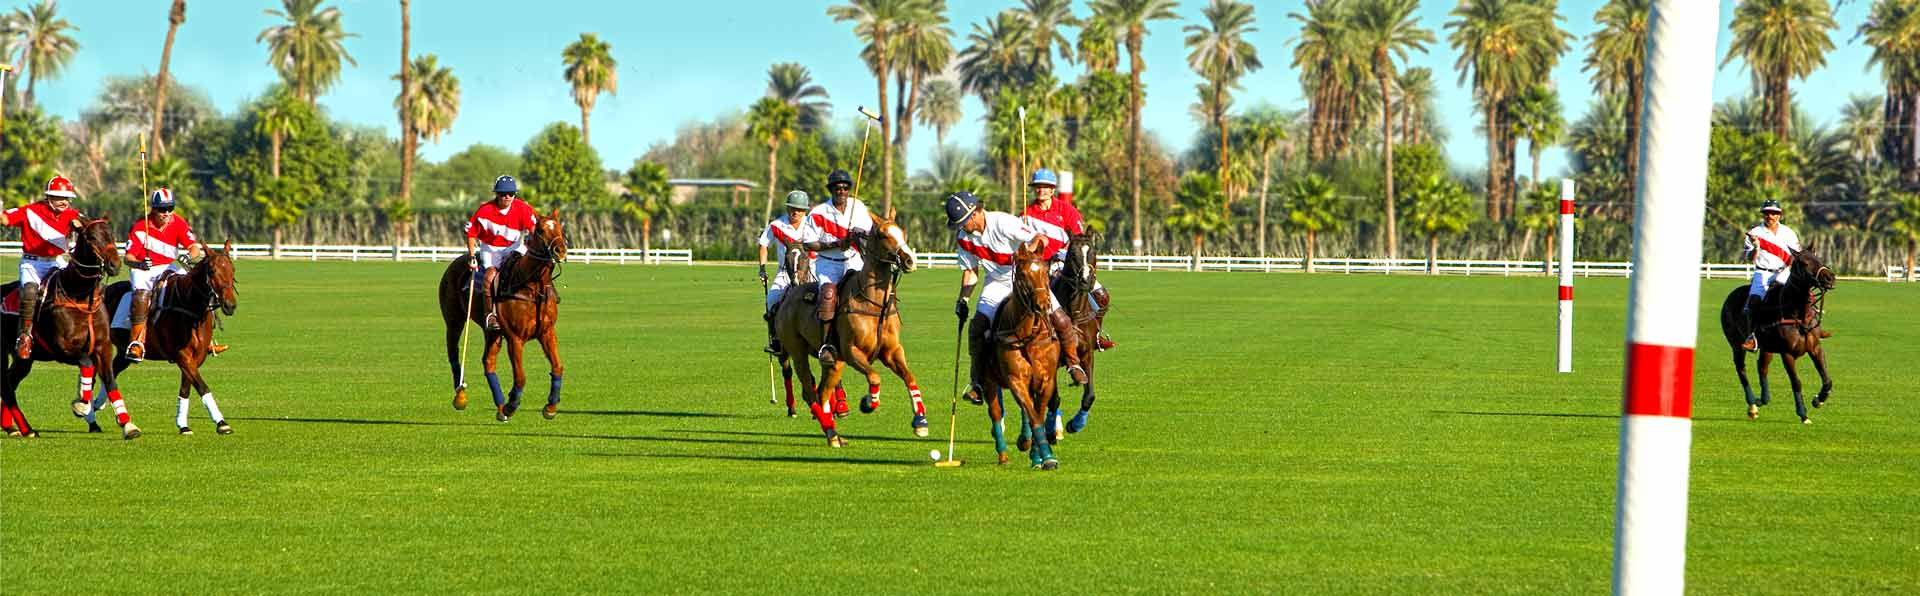 Polo Game in Lakewood Ranch